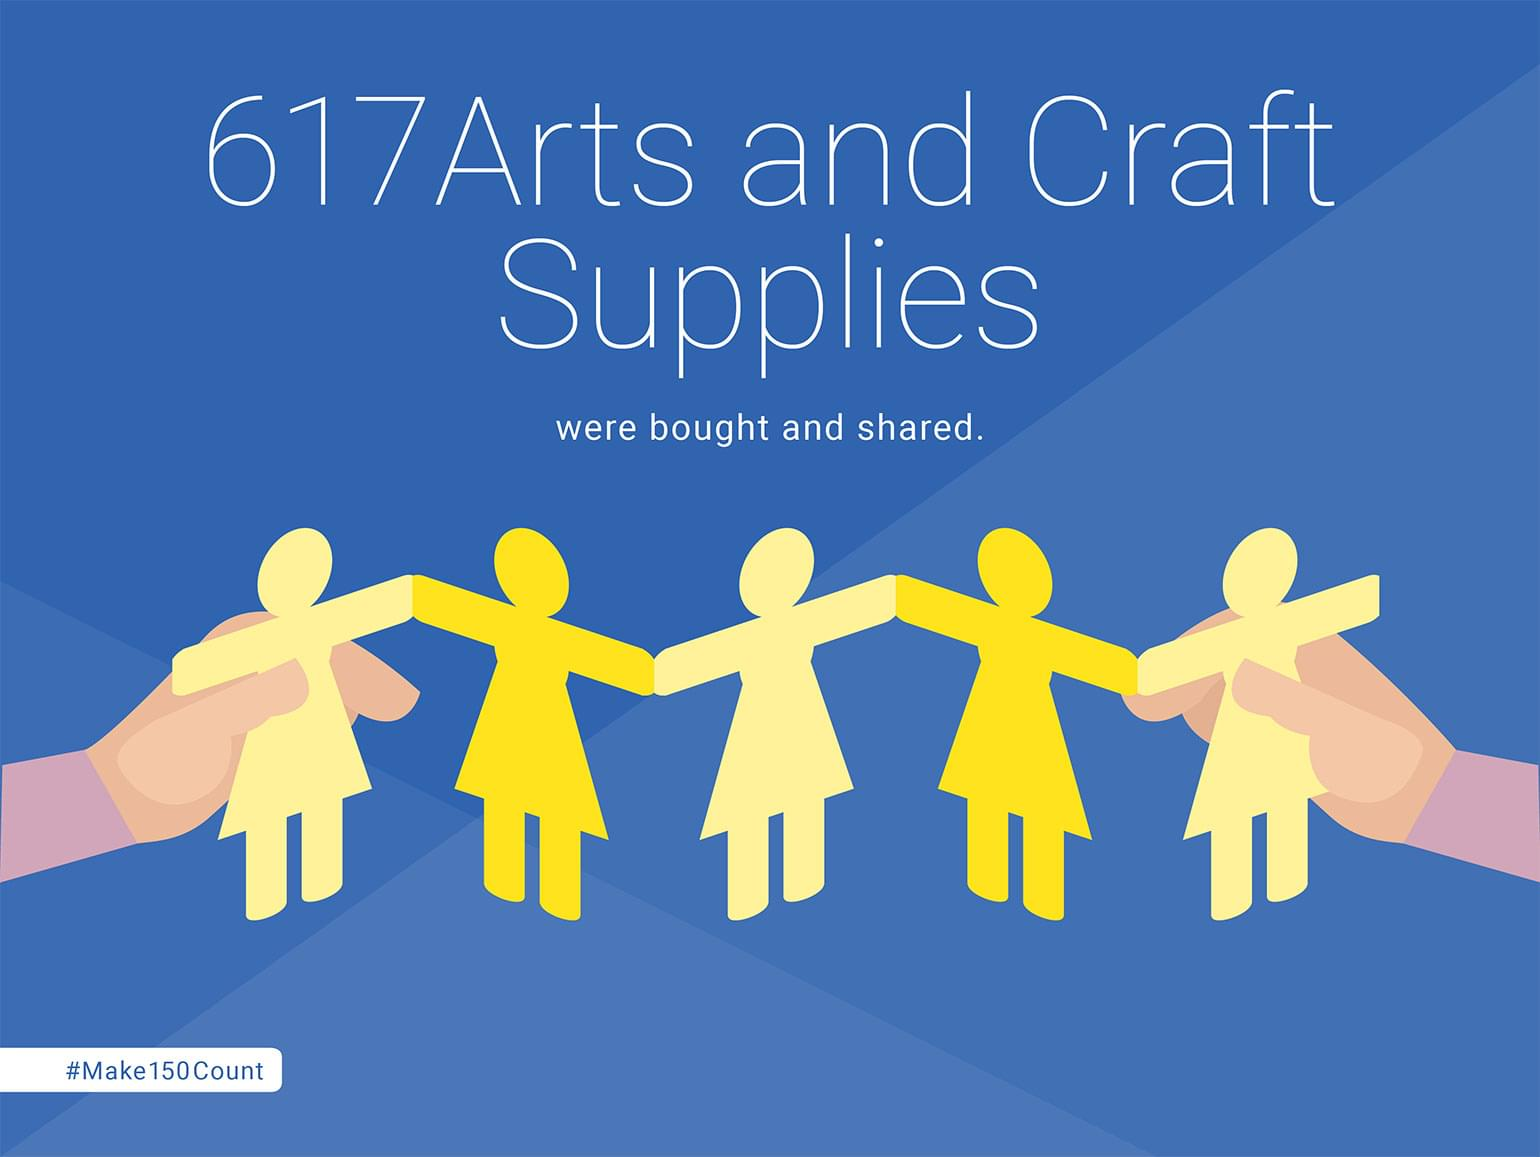 617 Art Supplies bought and shared.